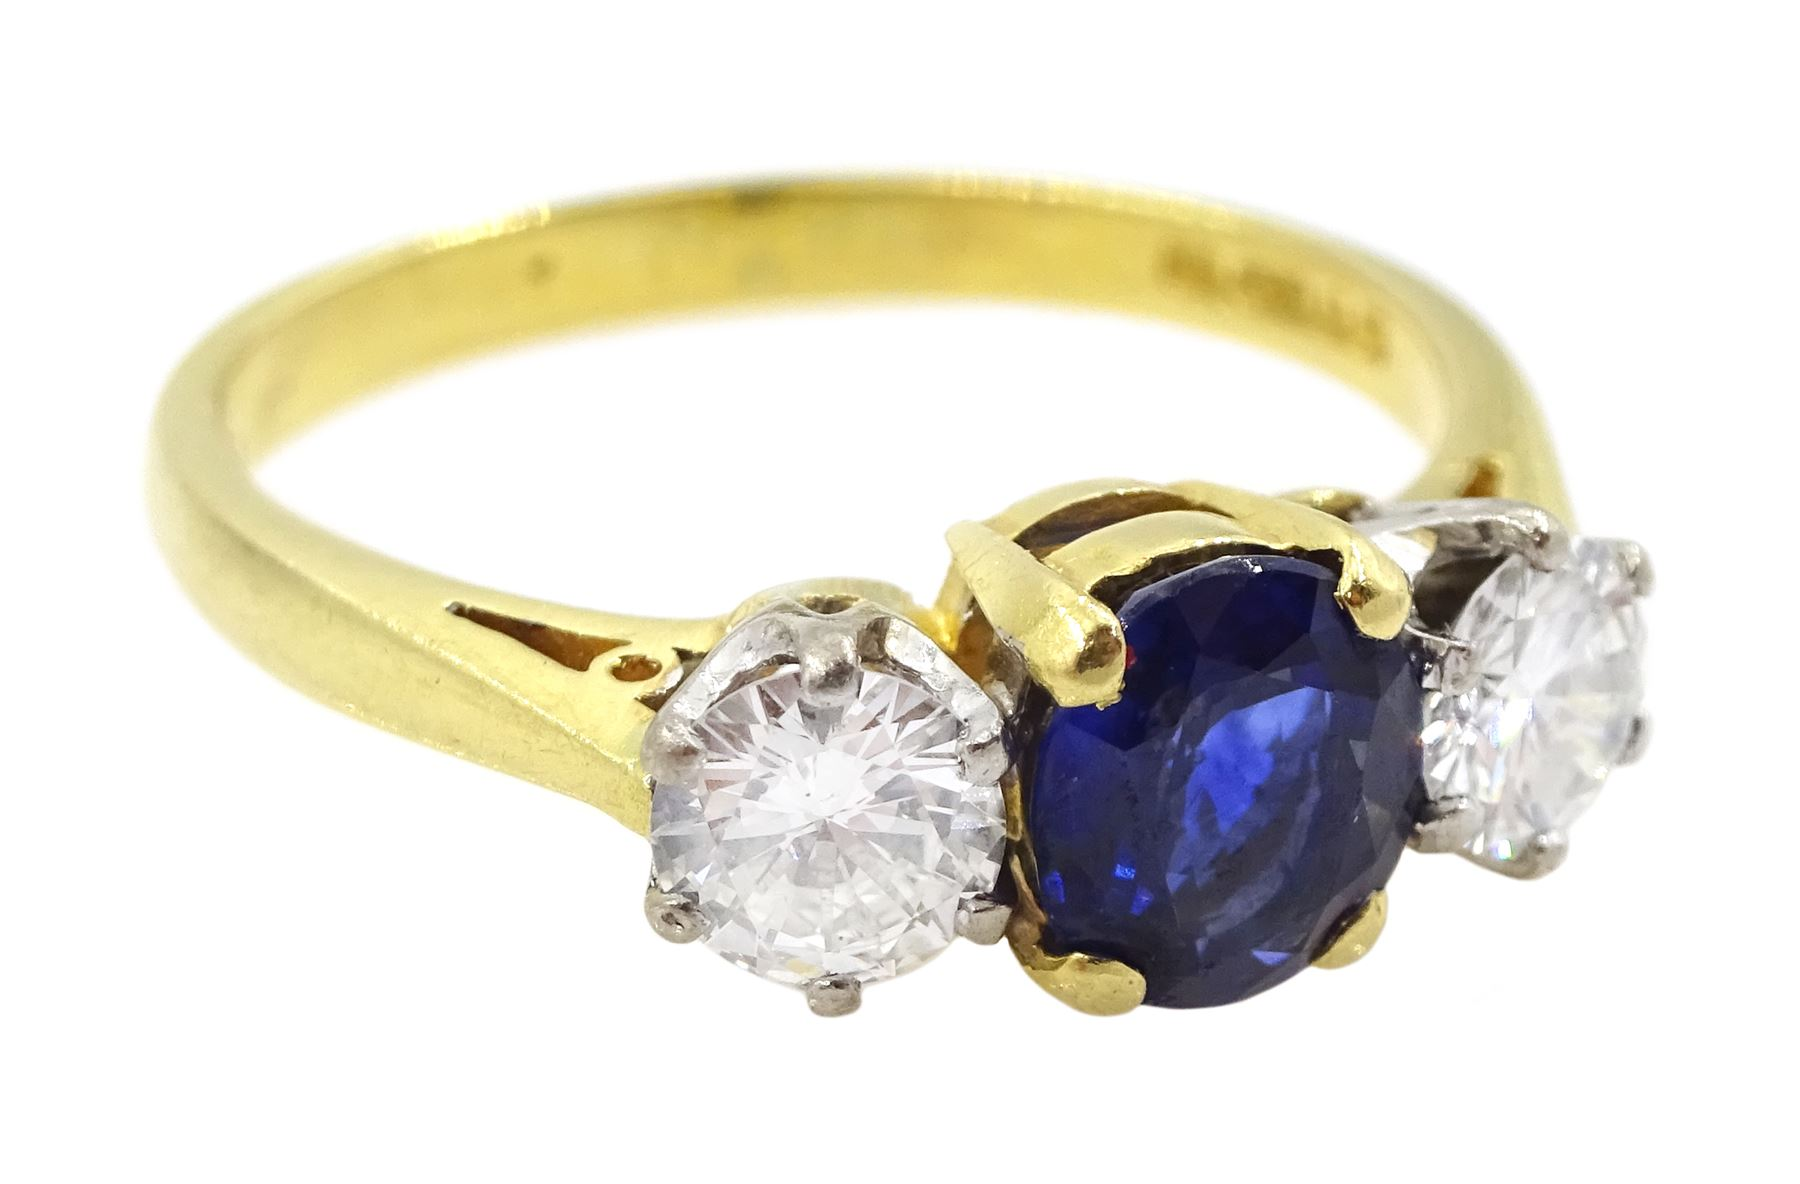 18ct gold three stone oval sapphire and round brilliant cut diamond ring - Image 4 of 4